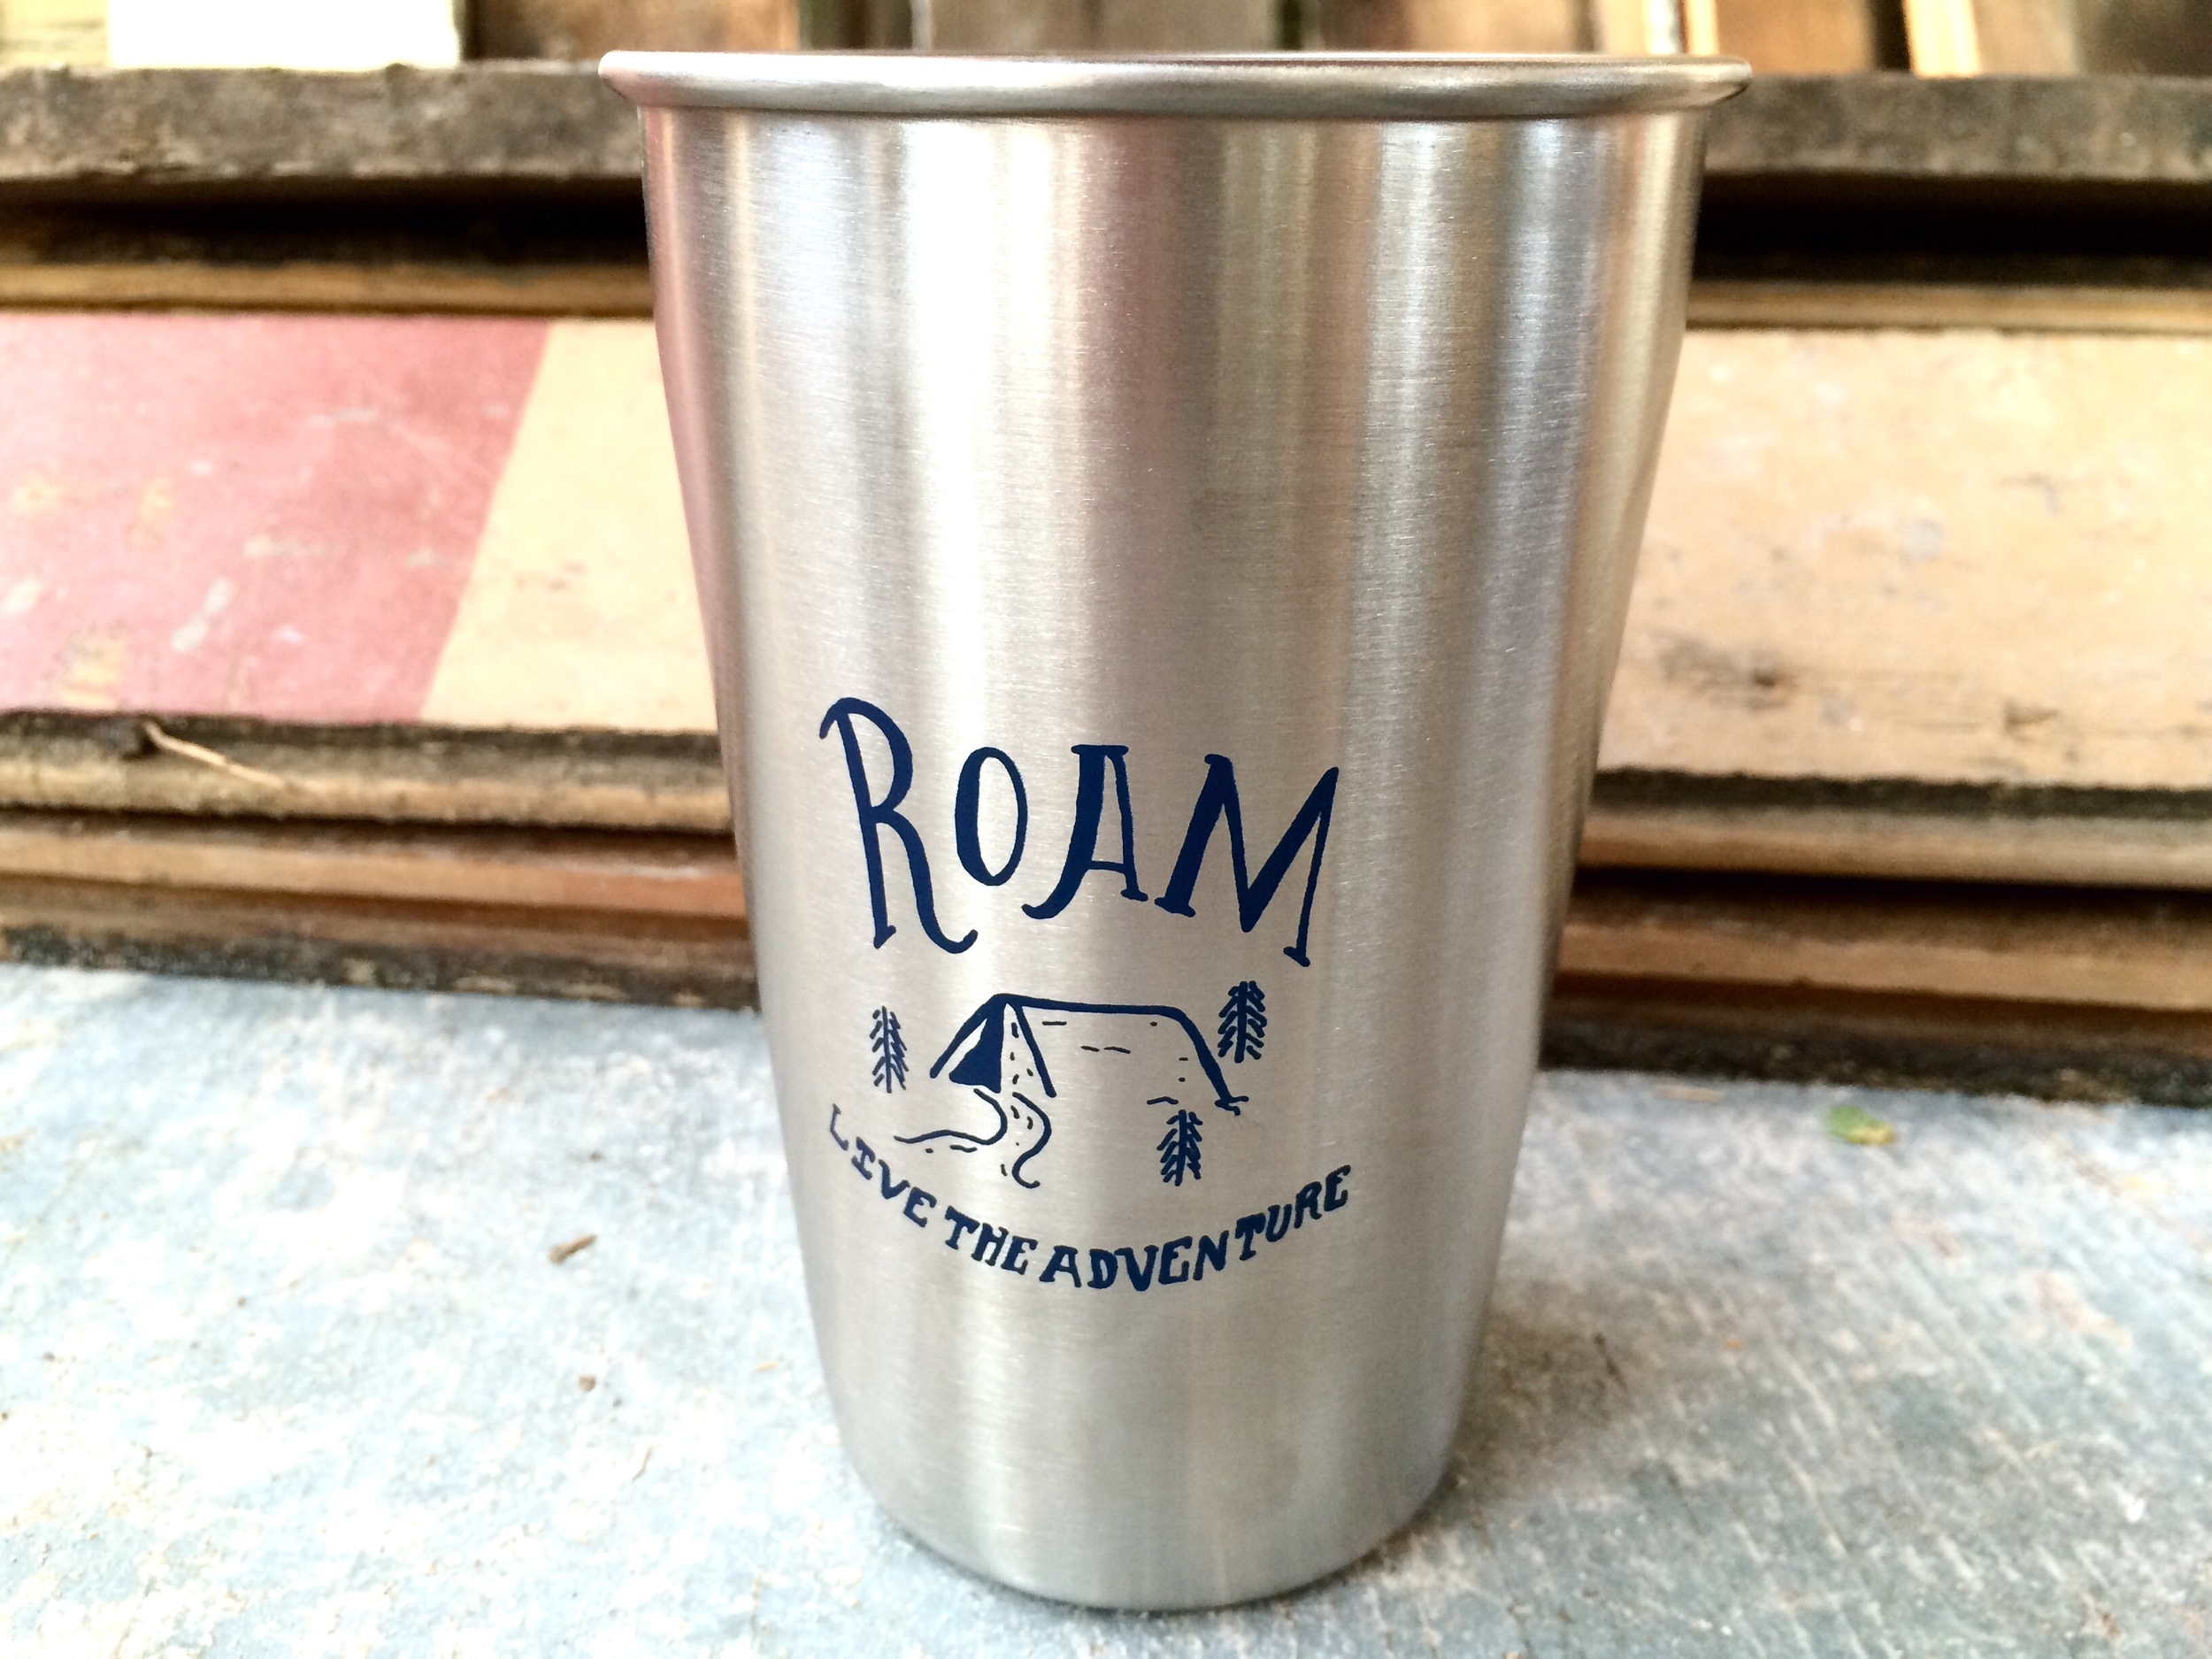 The Roam Steel Pint Cup